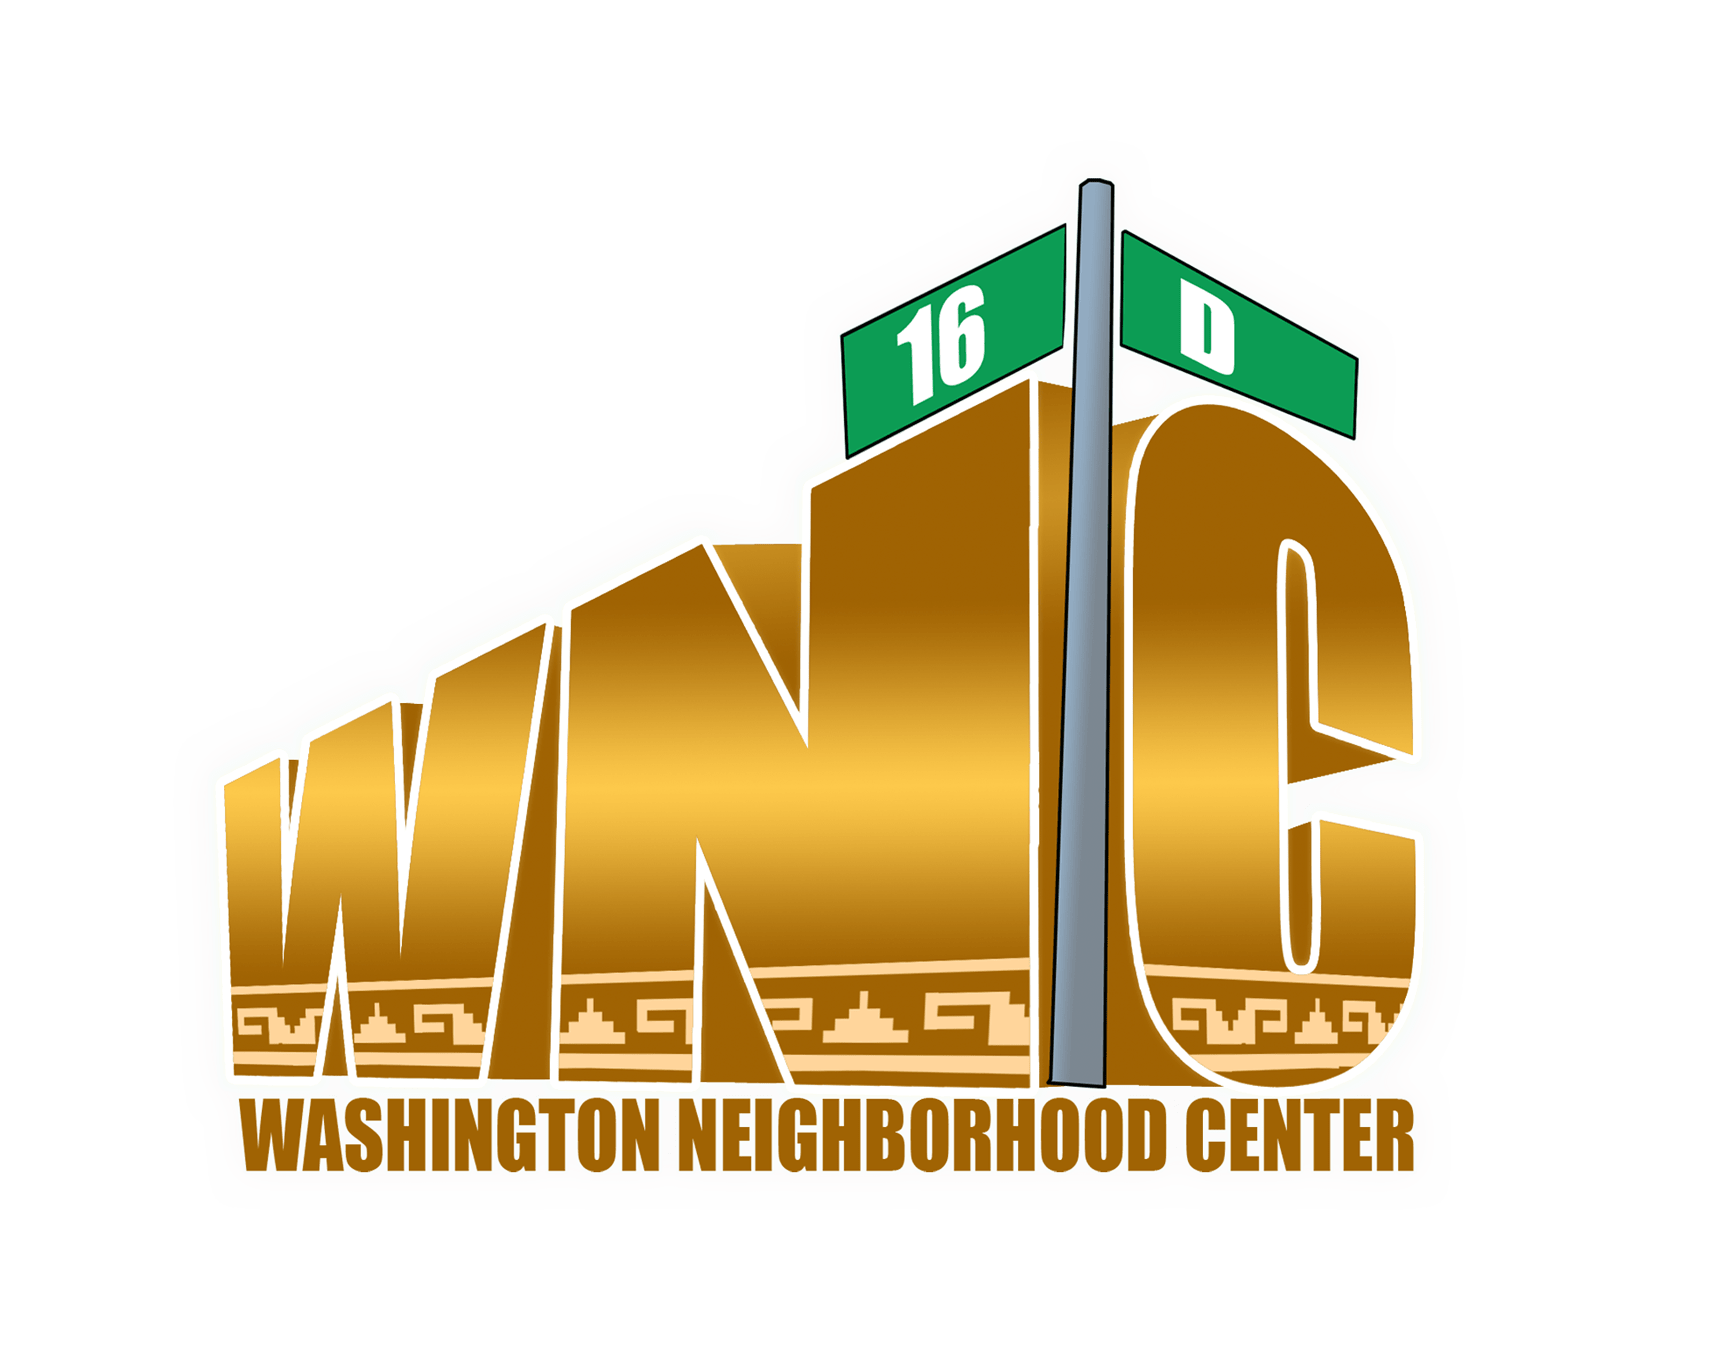 The Washington Neighborhood Center